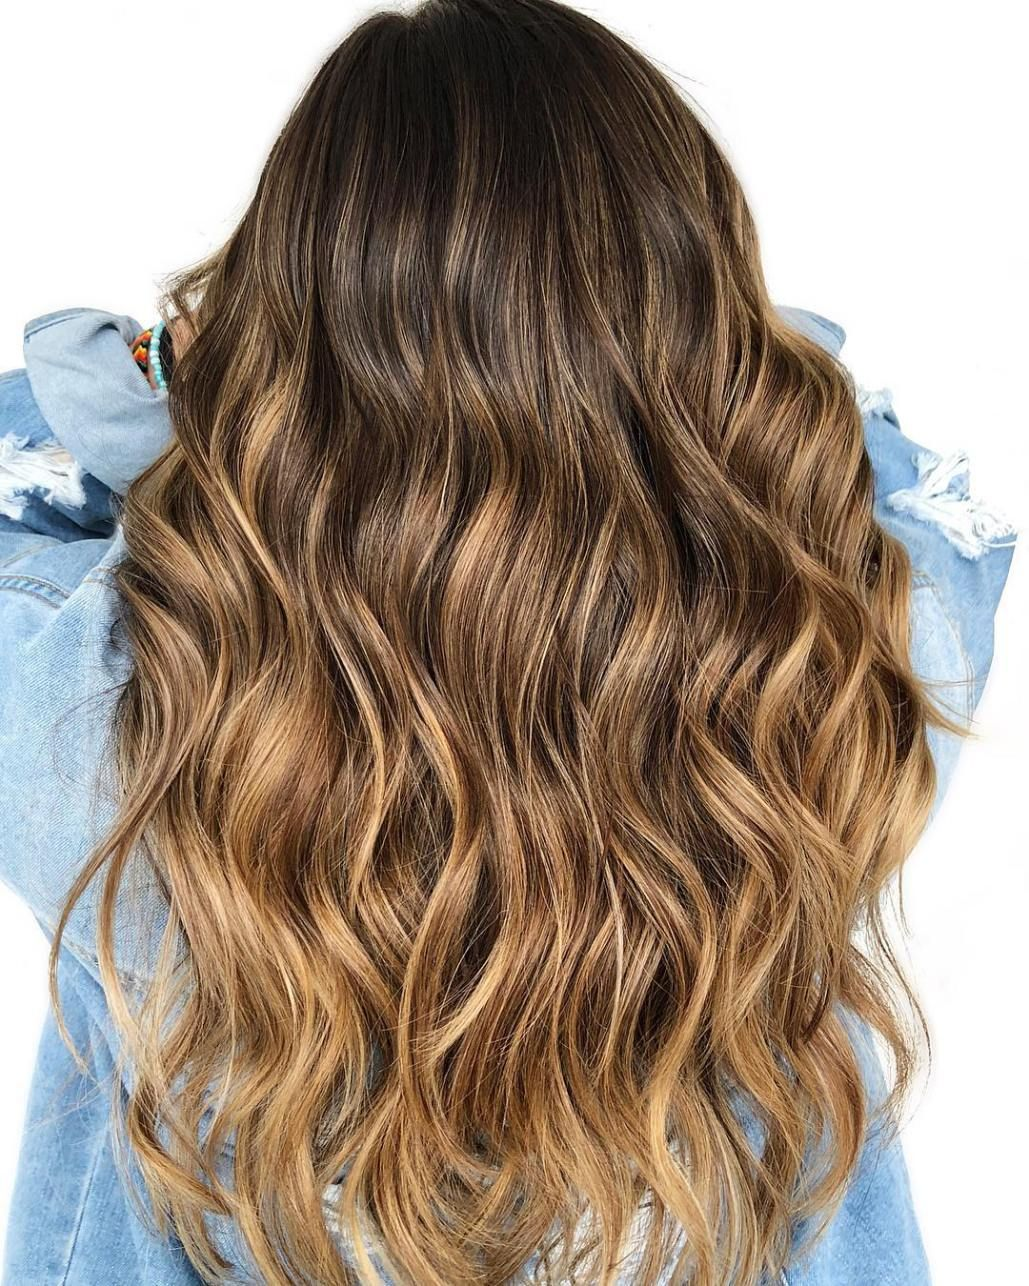 Golden Caramel Highlights for Brown Hair